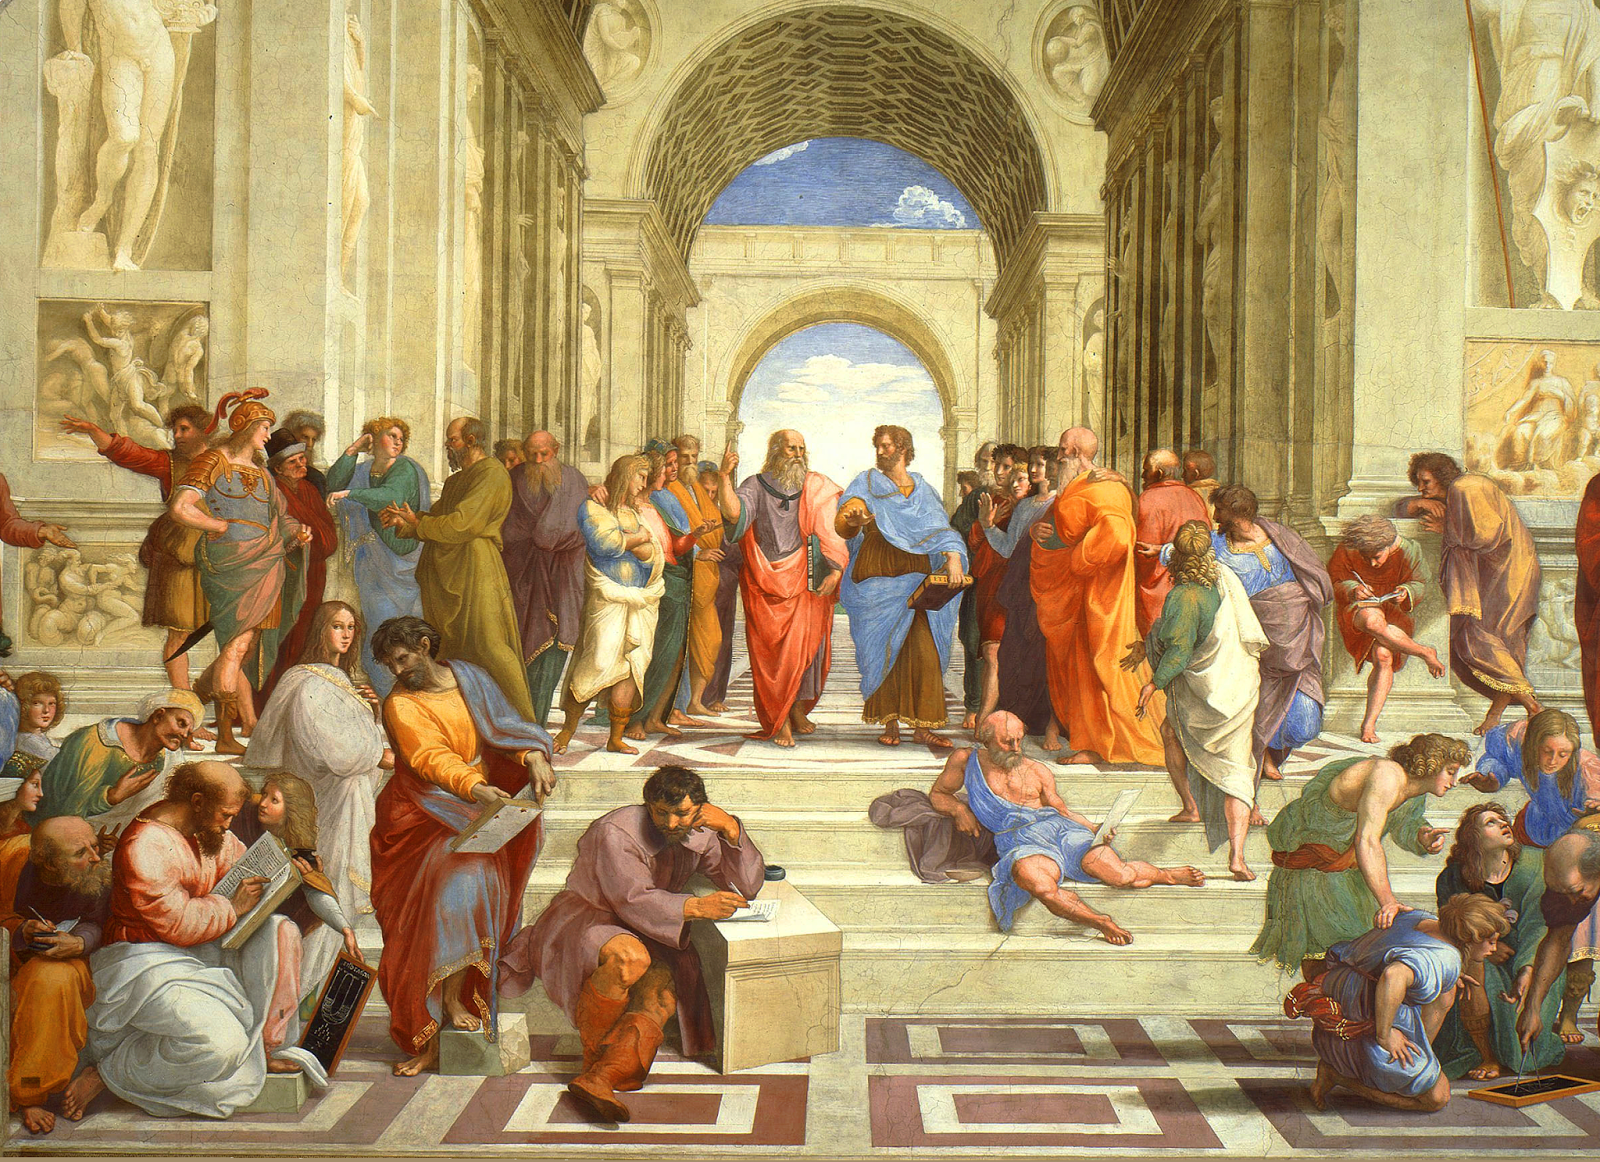 an analysis of the artork school of athens by raphael Raphael was an italian renaissance artists that painted his famous school of athens in 1510 this piece of work is the epitome of a great painting for composition, among.